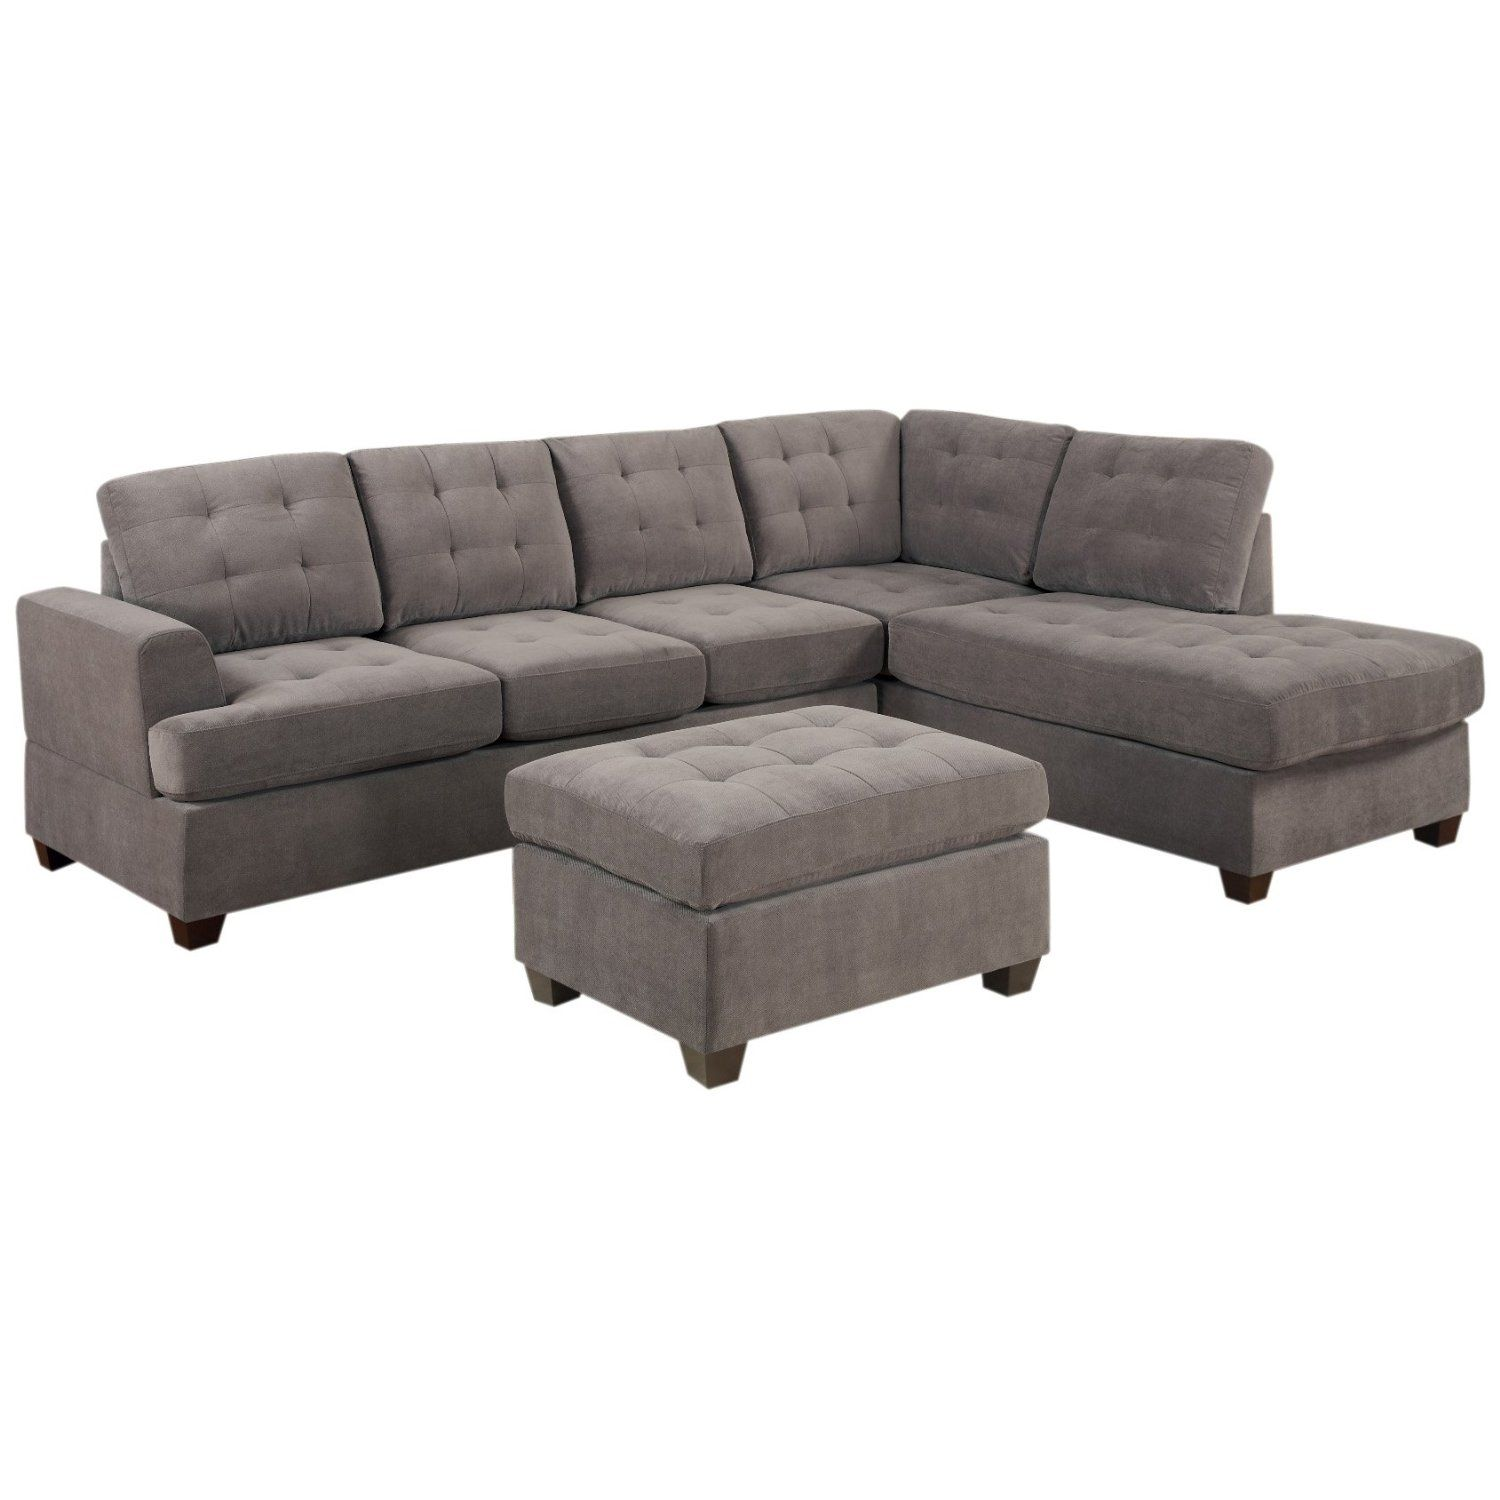 Amazon Couch Tufted Sectional Sofa Couch With Chaise Ottoman Sofa